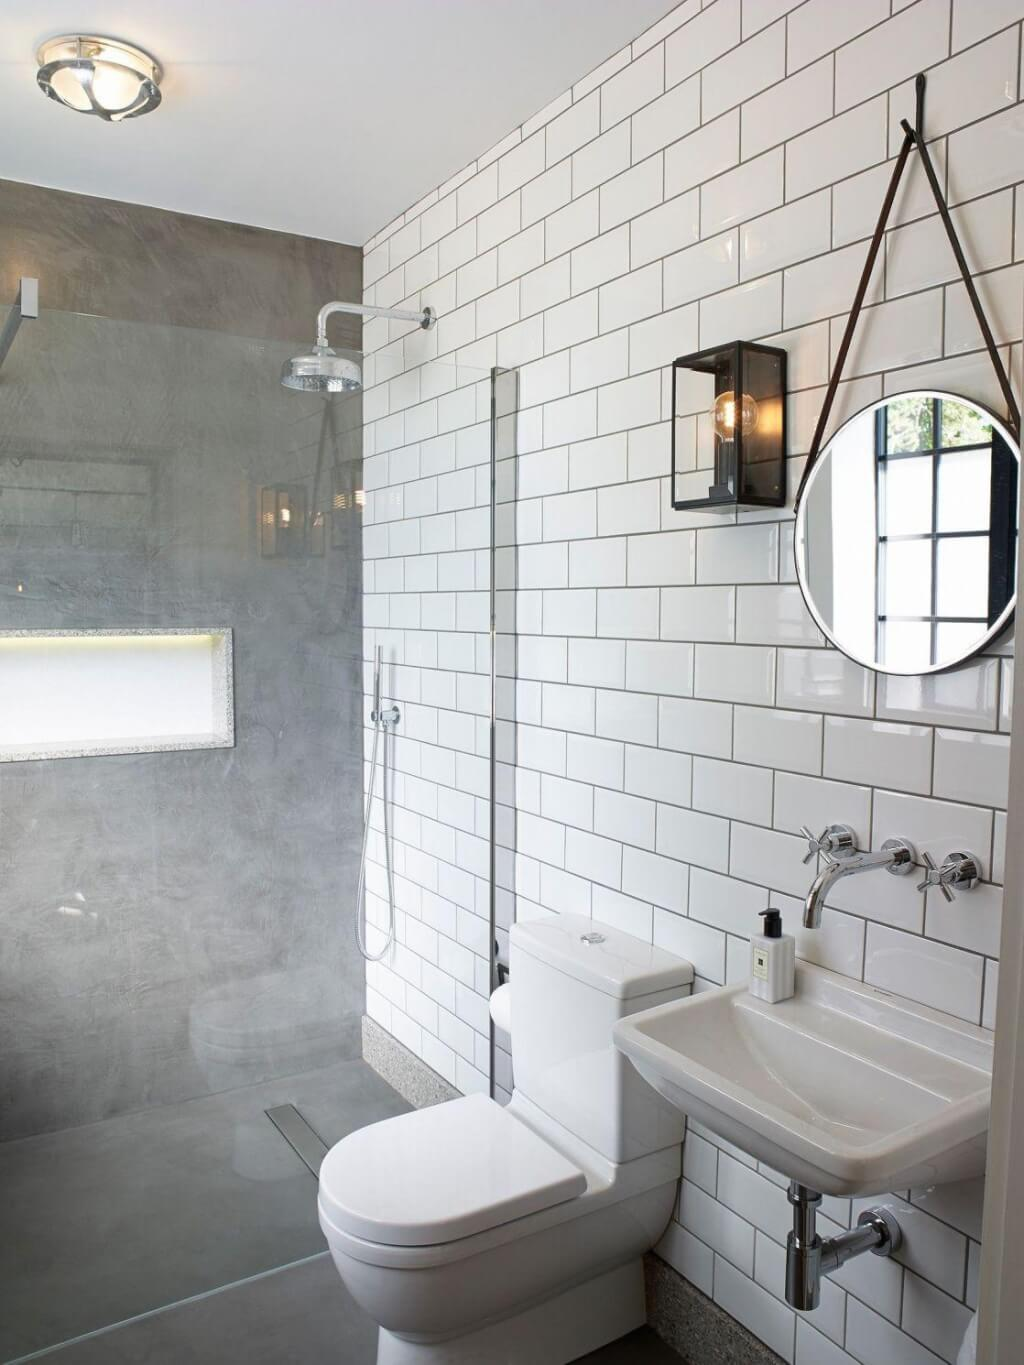 30 Extraordinary Shower Tiles Ideas You Should Try - DIY ...